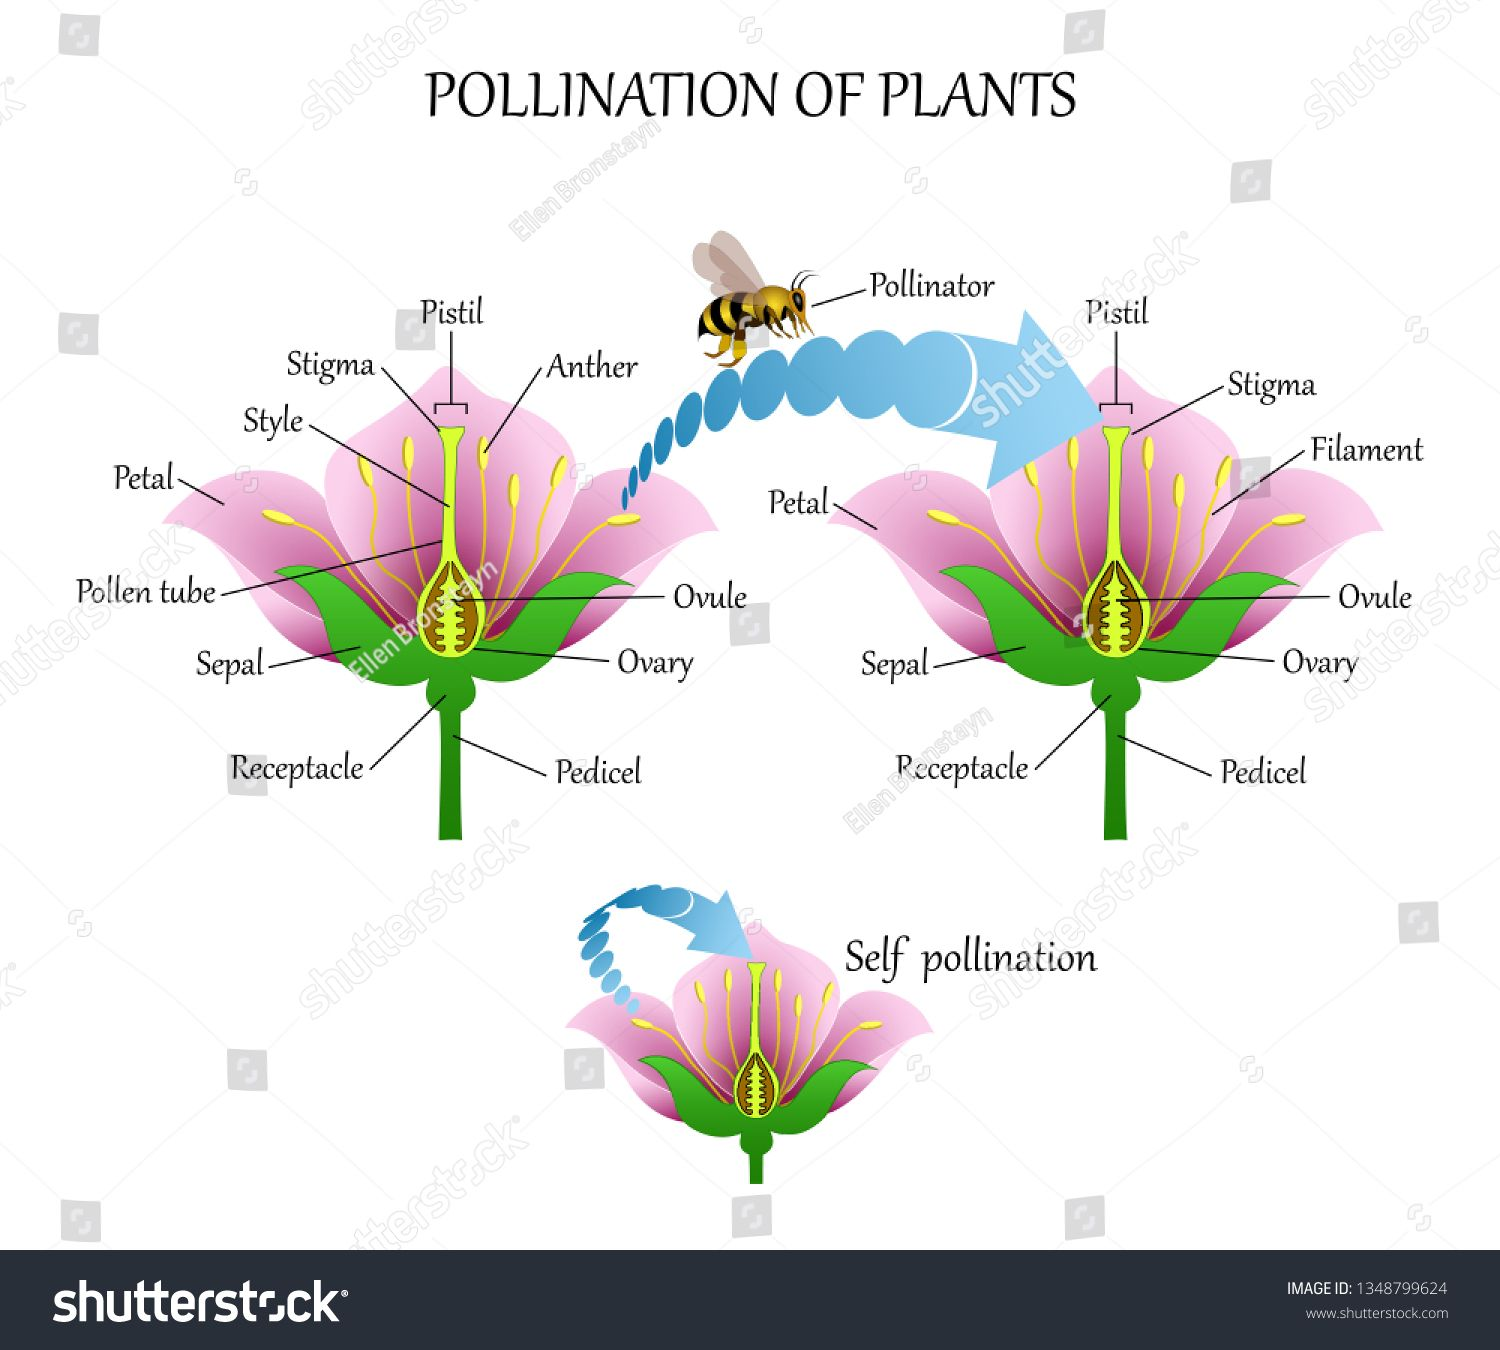 Pollinating Plants With Insects And Self Pollination